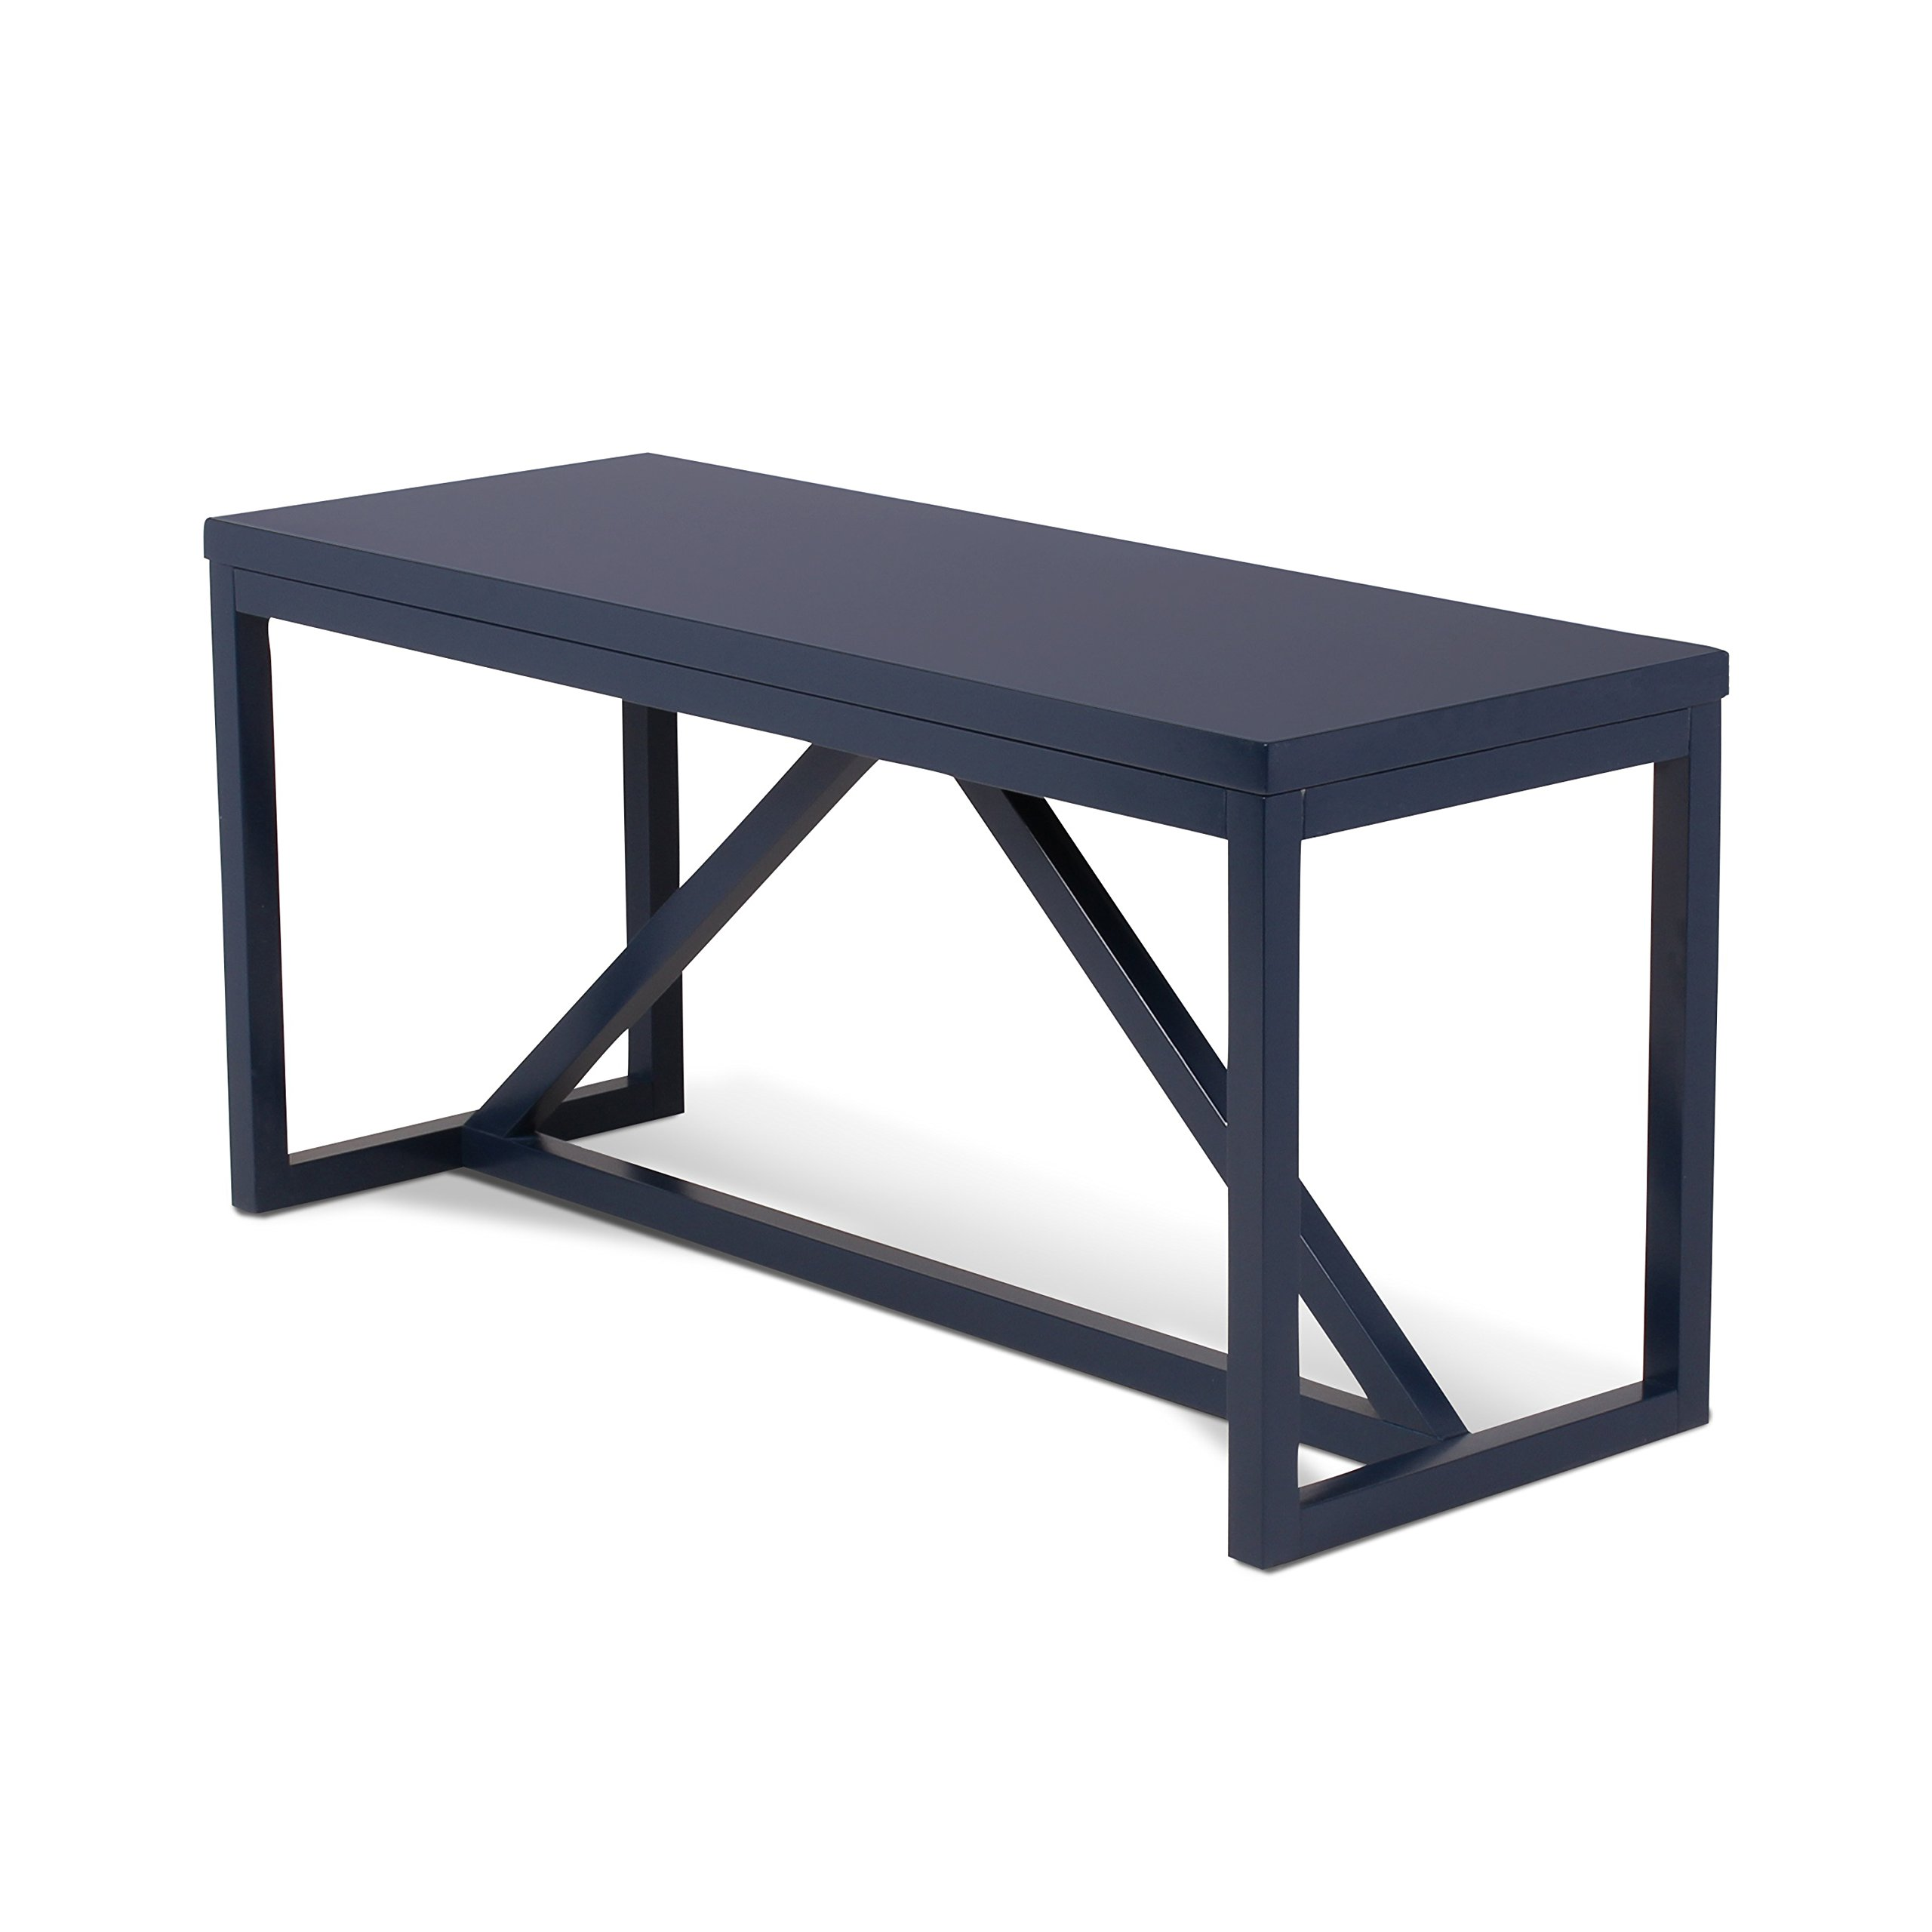 Kate and Laurel Kaya Wood Bench, Navy Blue by Kate and Laurel (Image #1)